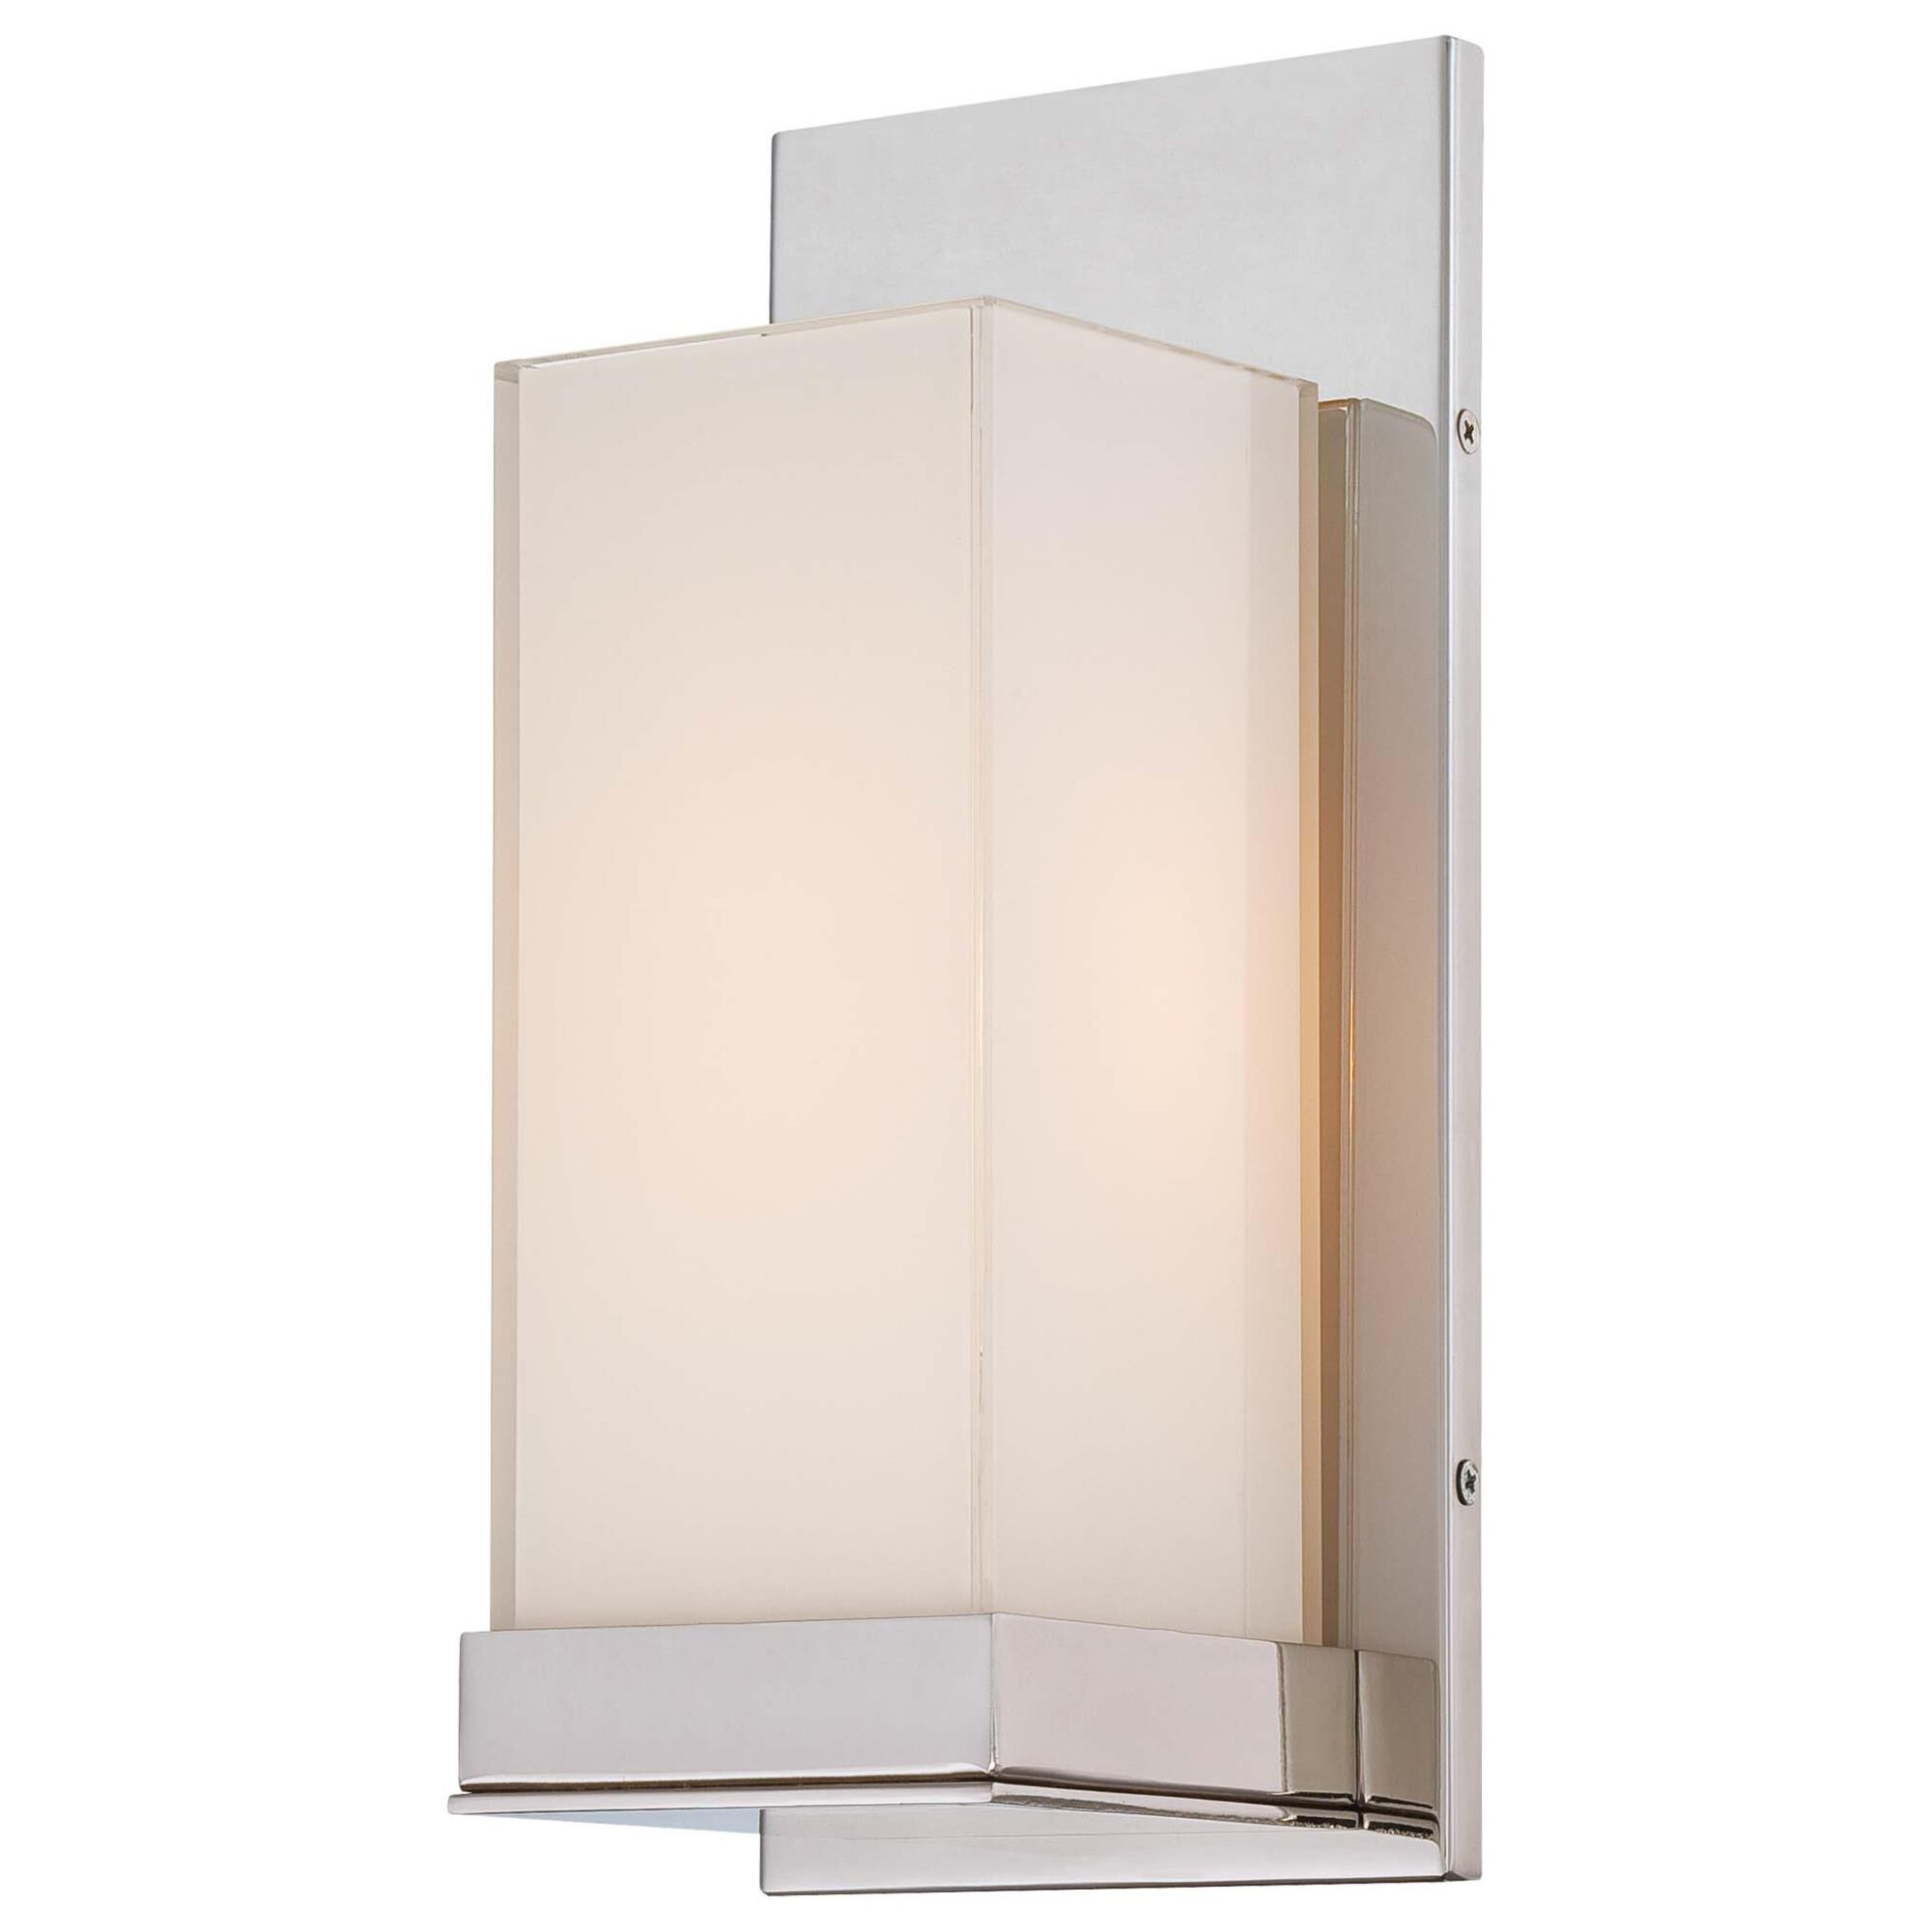 Kovacs 10 Inch Wall Sconce - P1700-613 - Modern Contemporary